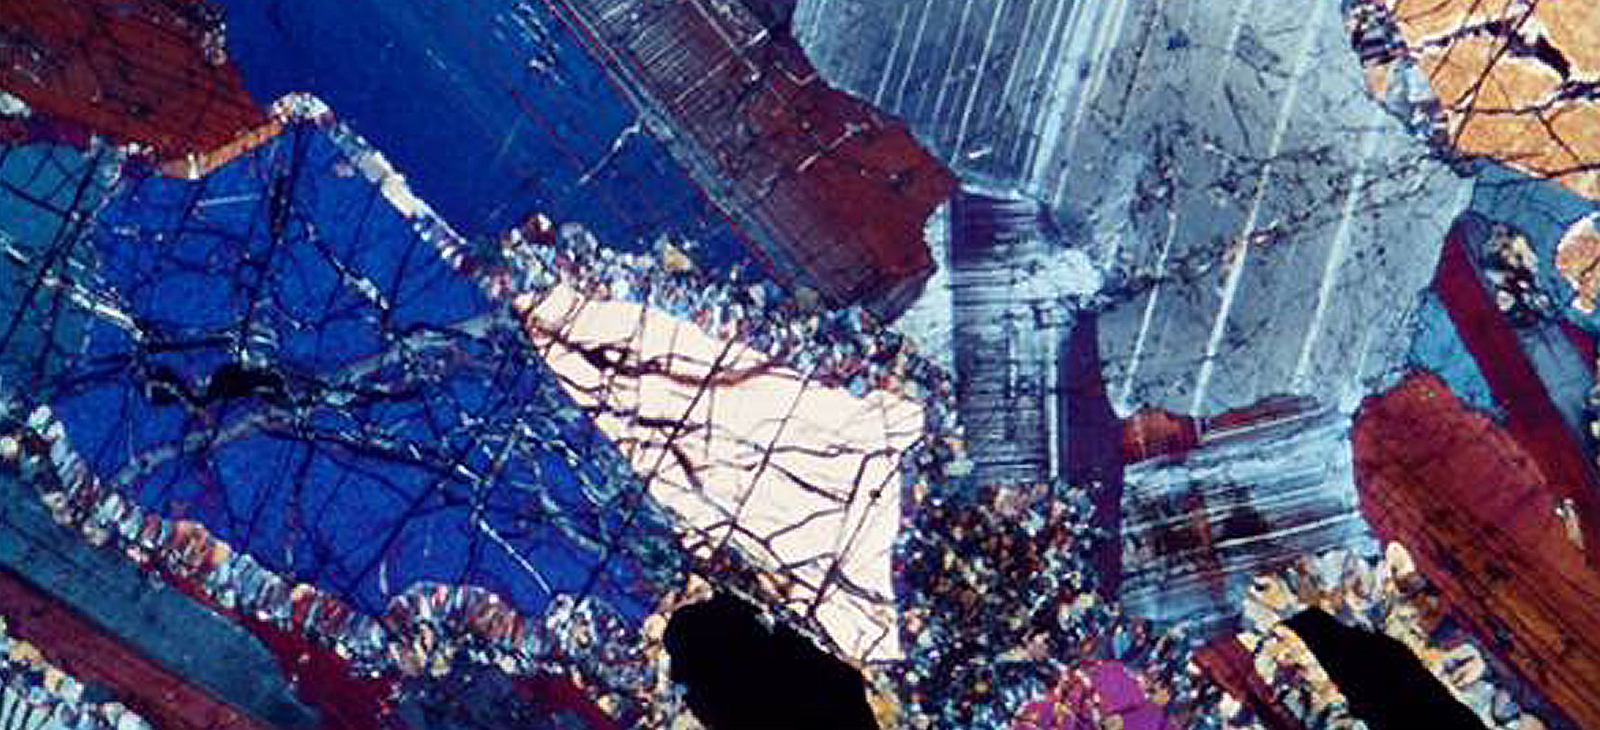 MIneralogy and thin sections